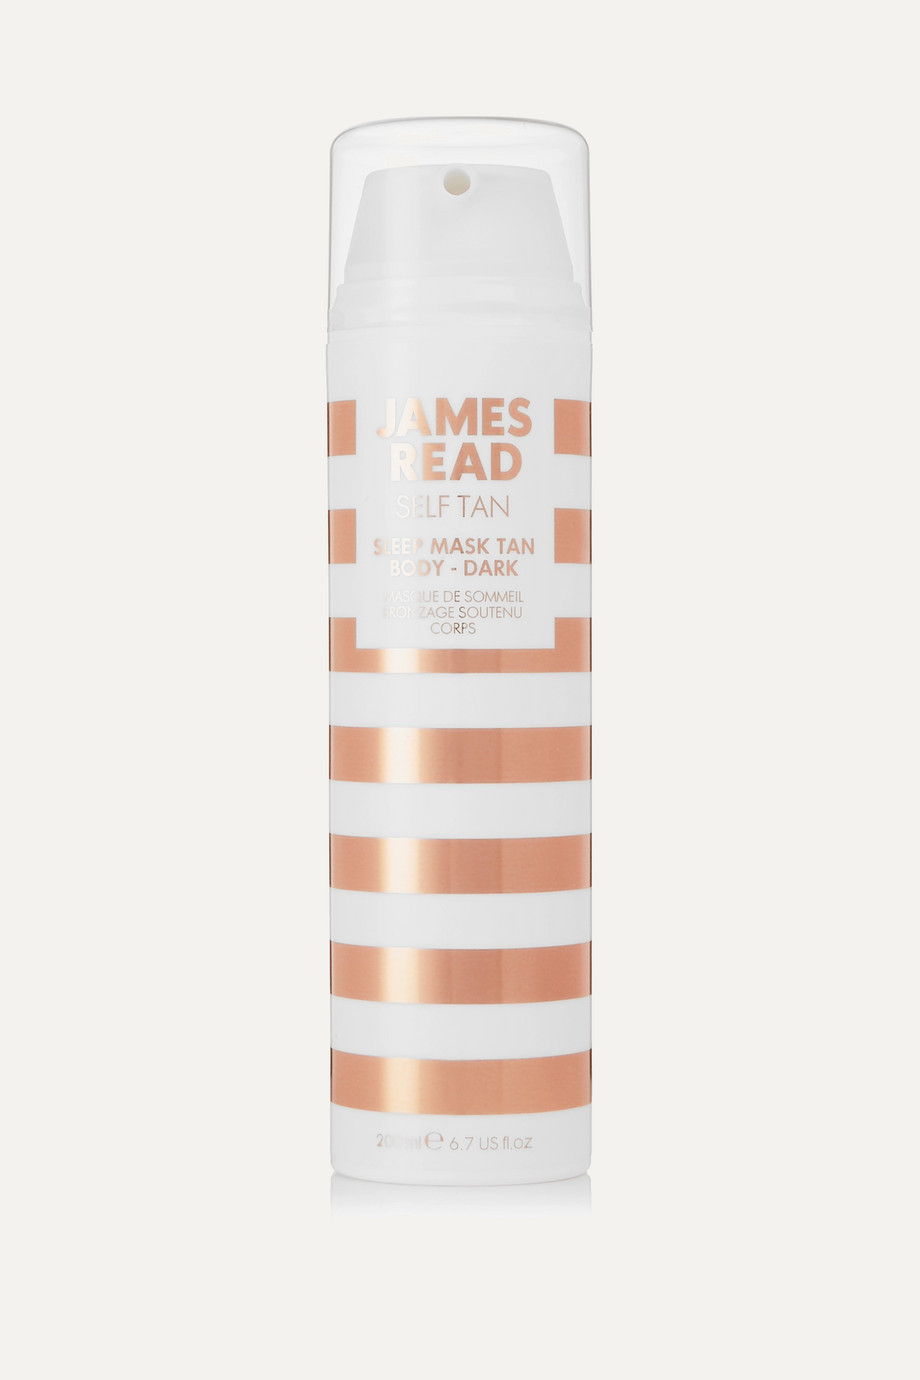 James Read Sleep Mask Tan Go Darker Body, 200ml